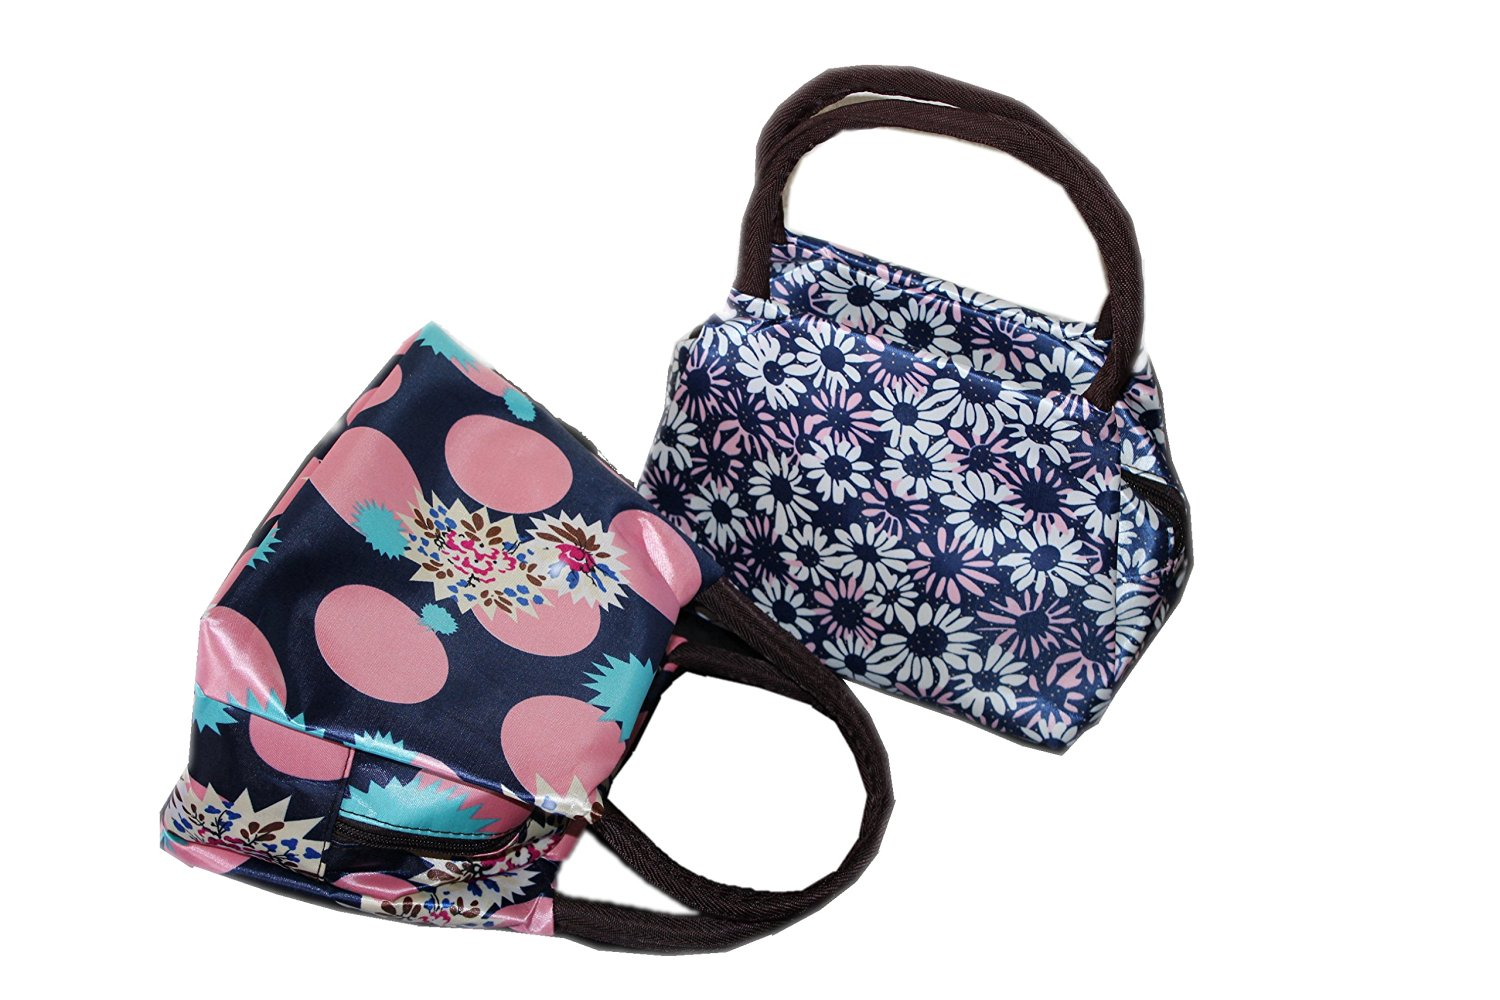 81eab992d5bd Cheap Toiletry Bags For Kids, find Toiletry Bags For Kids deals on ...